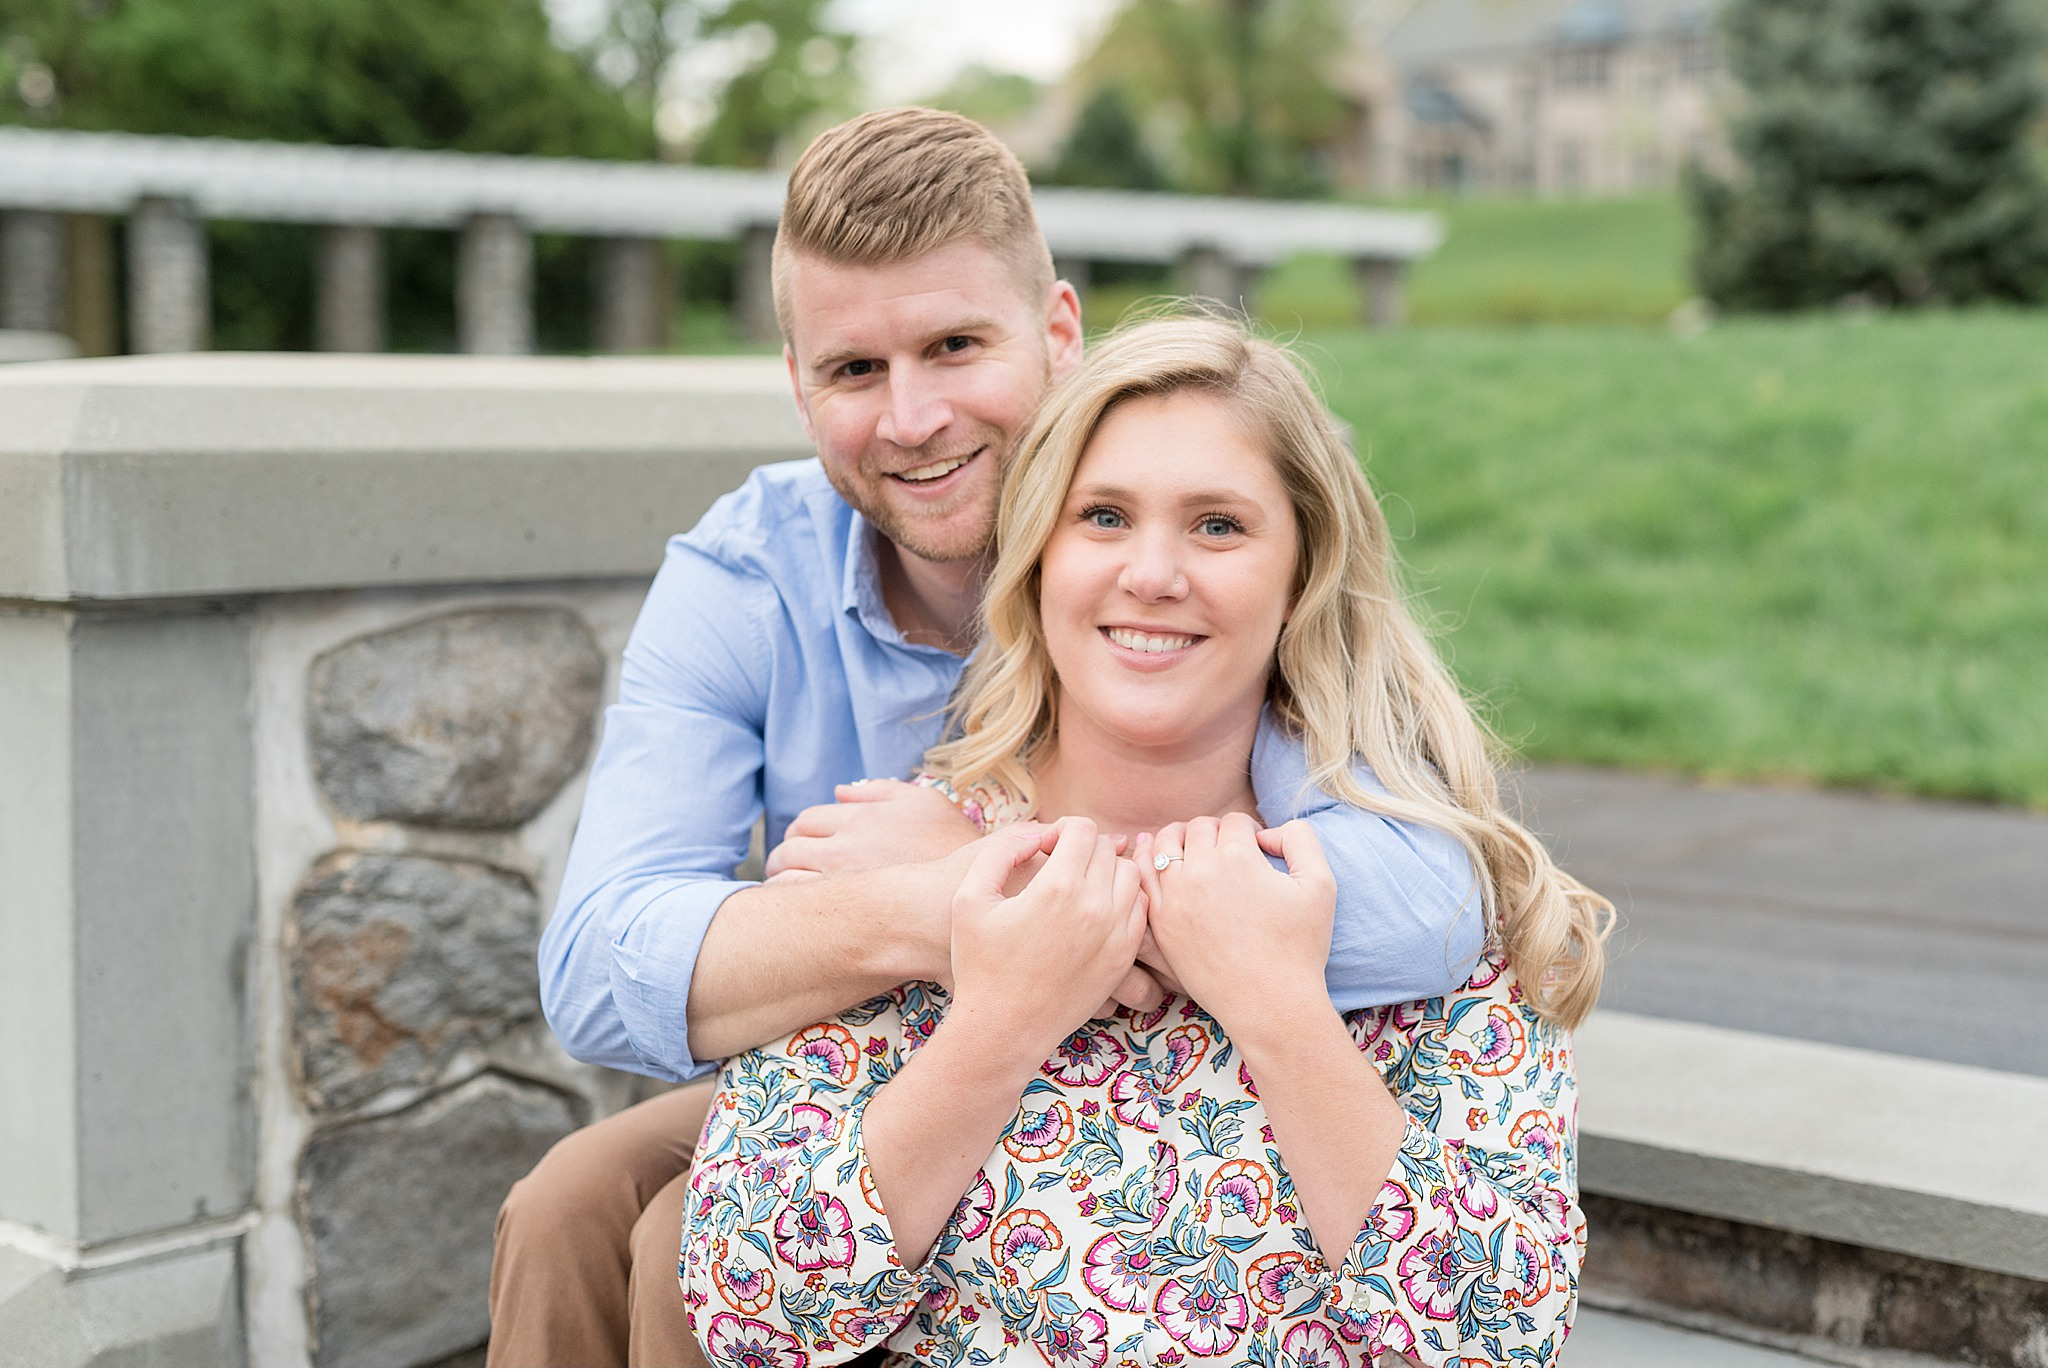 Masonic Village Elizabethtown PA Engagement Photography_3283.jpg